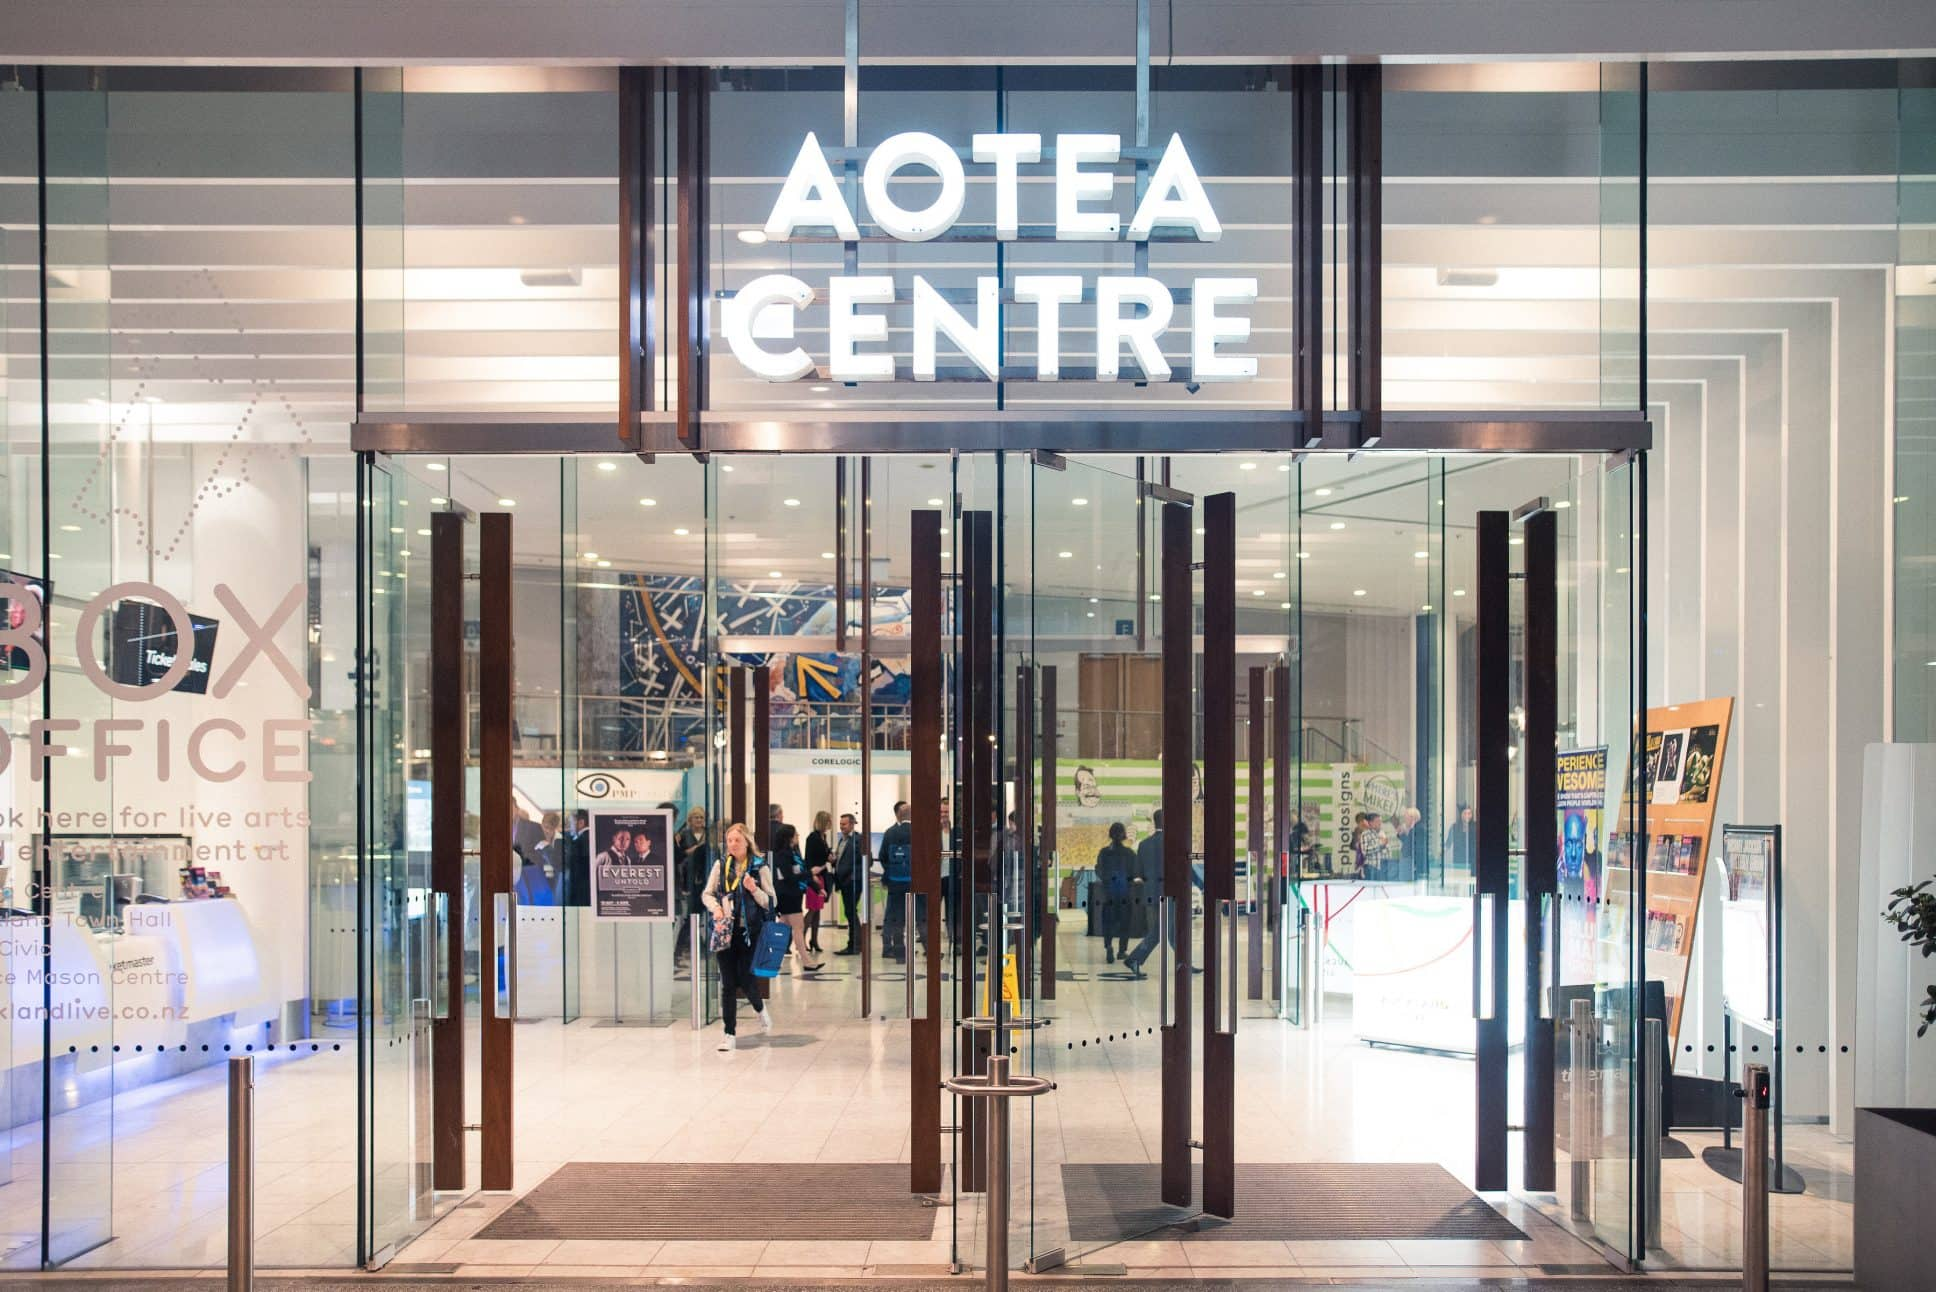 Event held at Aotea Centre